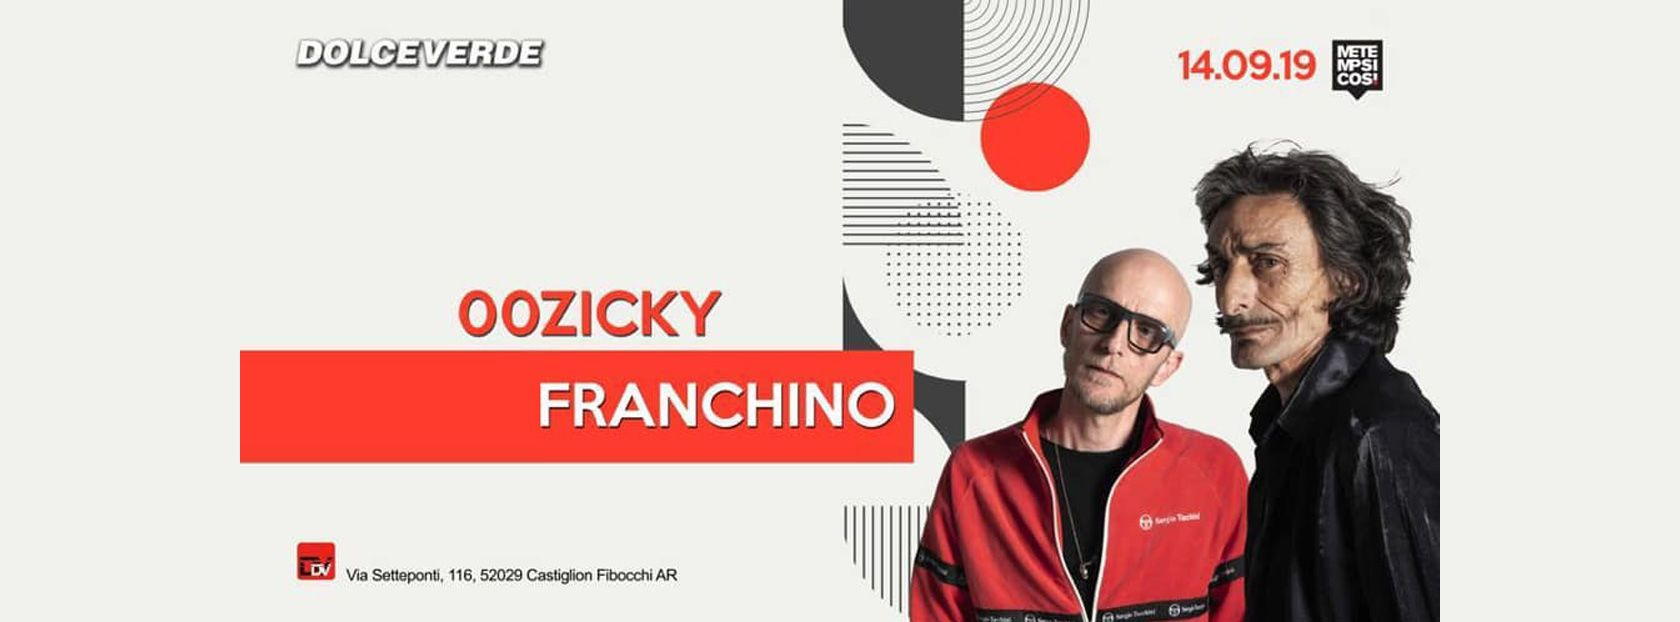 DOLCEVERDE 00zicky & Franchino - Big Event